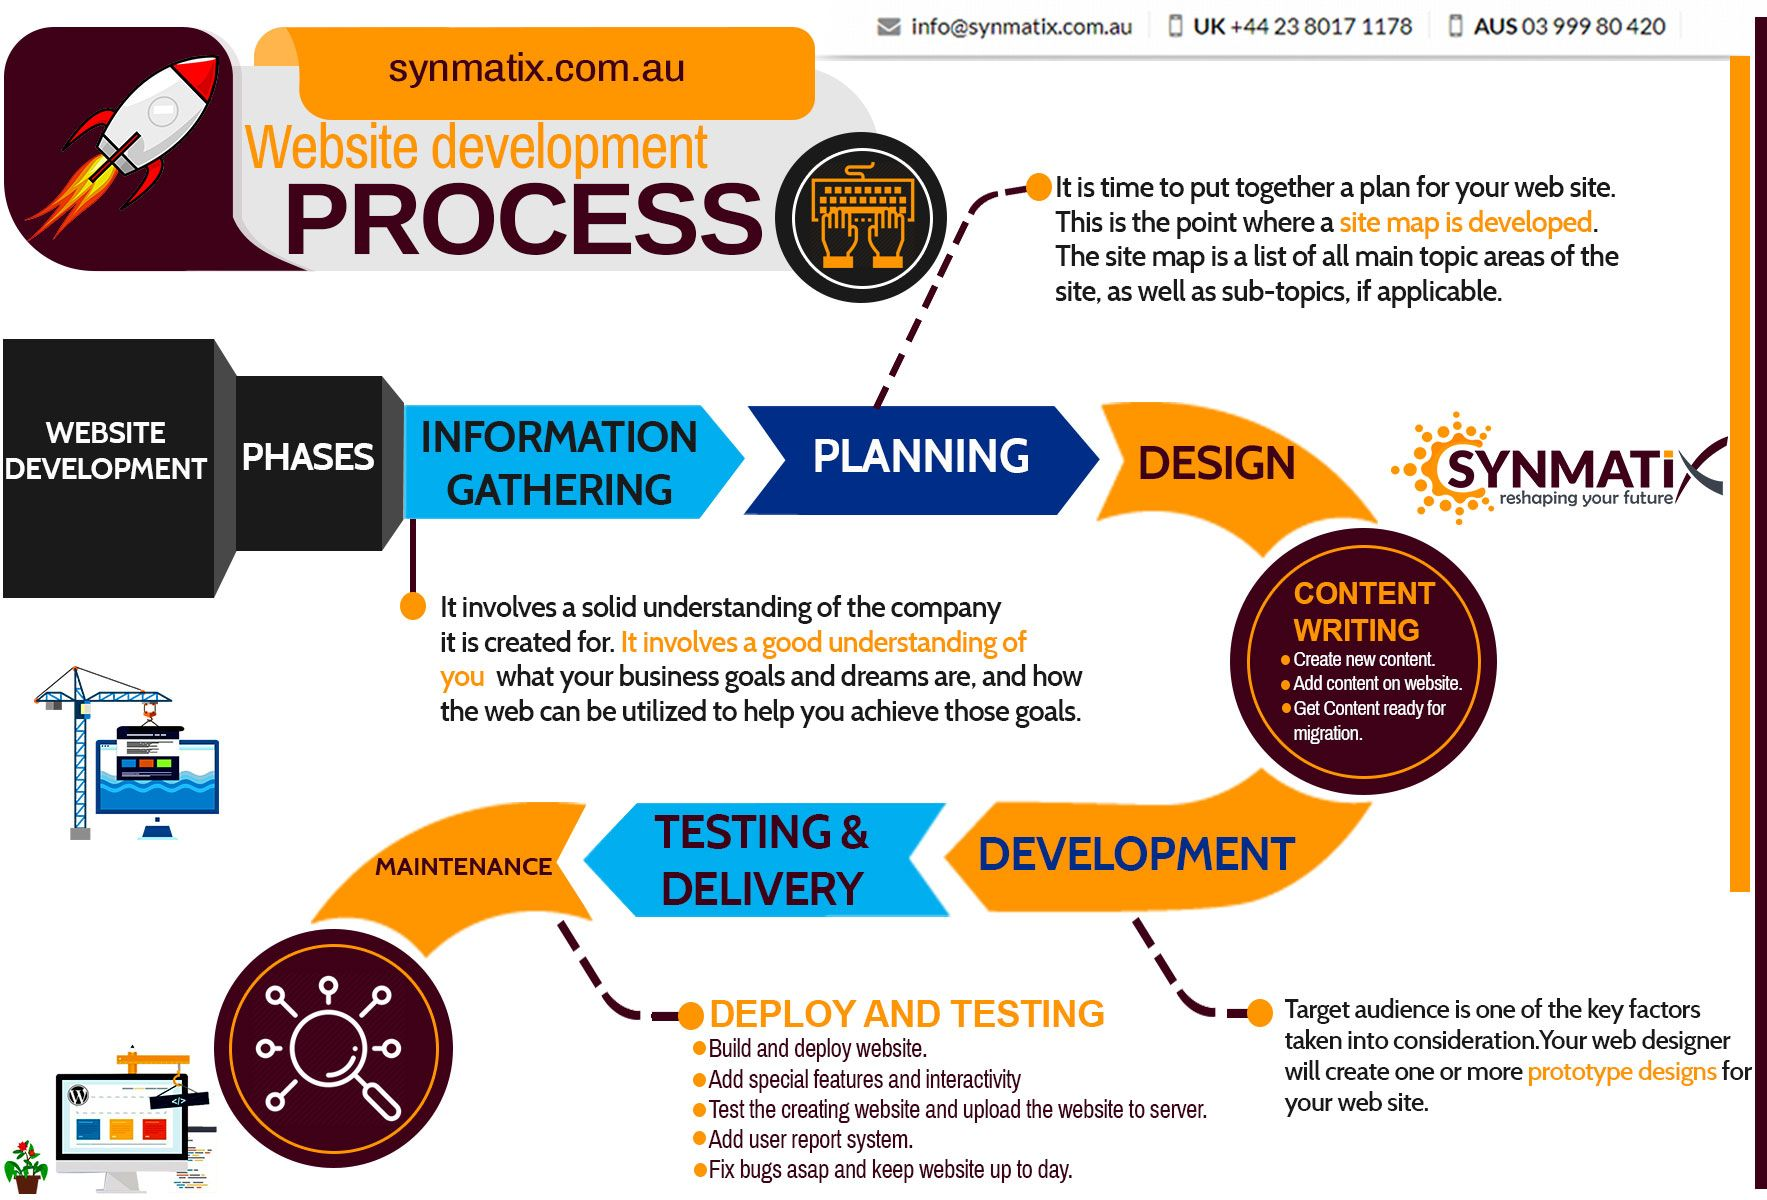 Complete process of web development - Synmatix offers